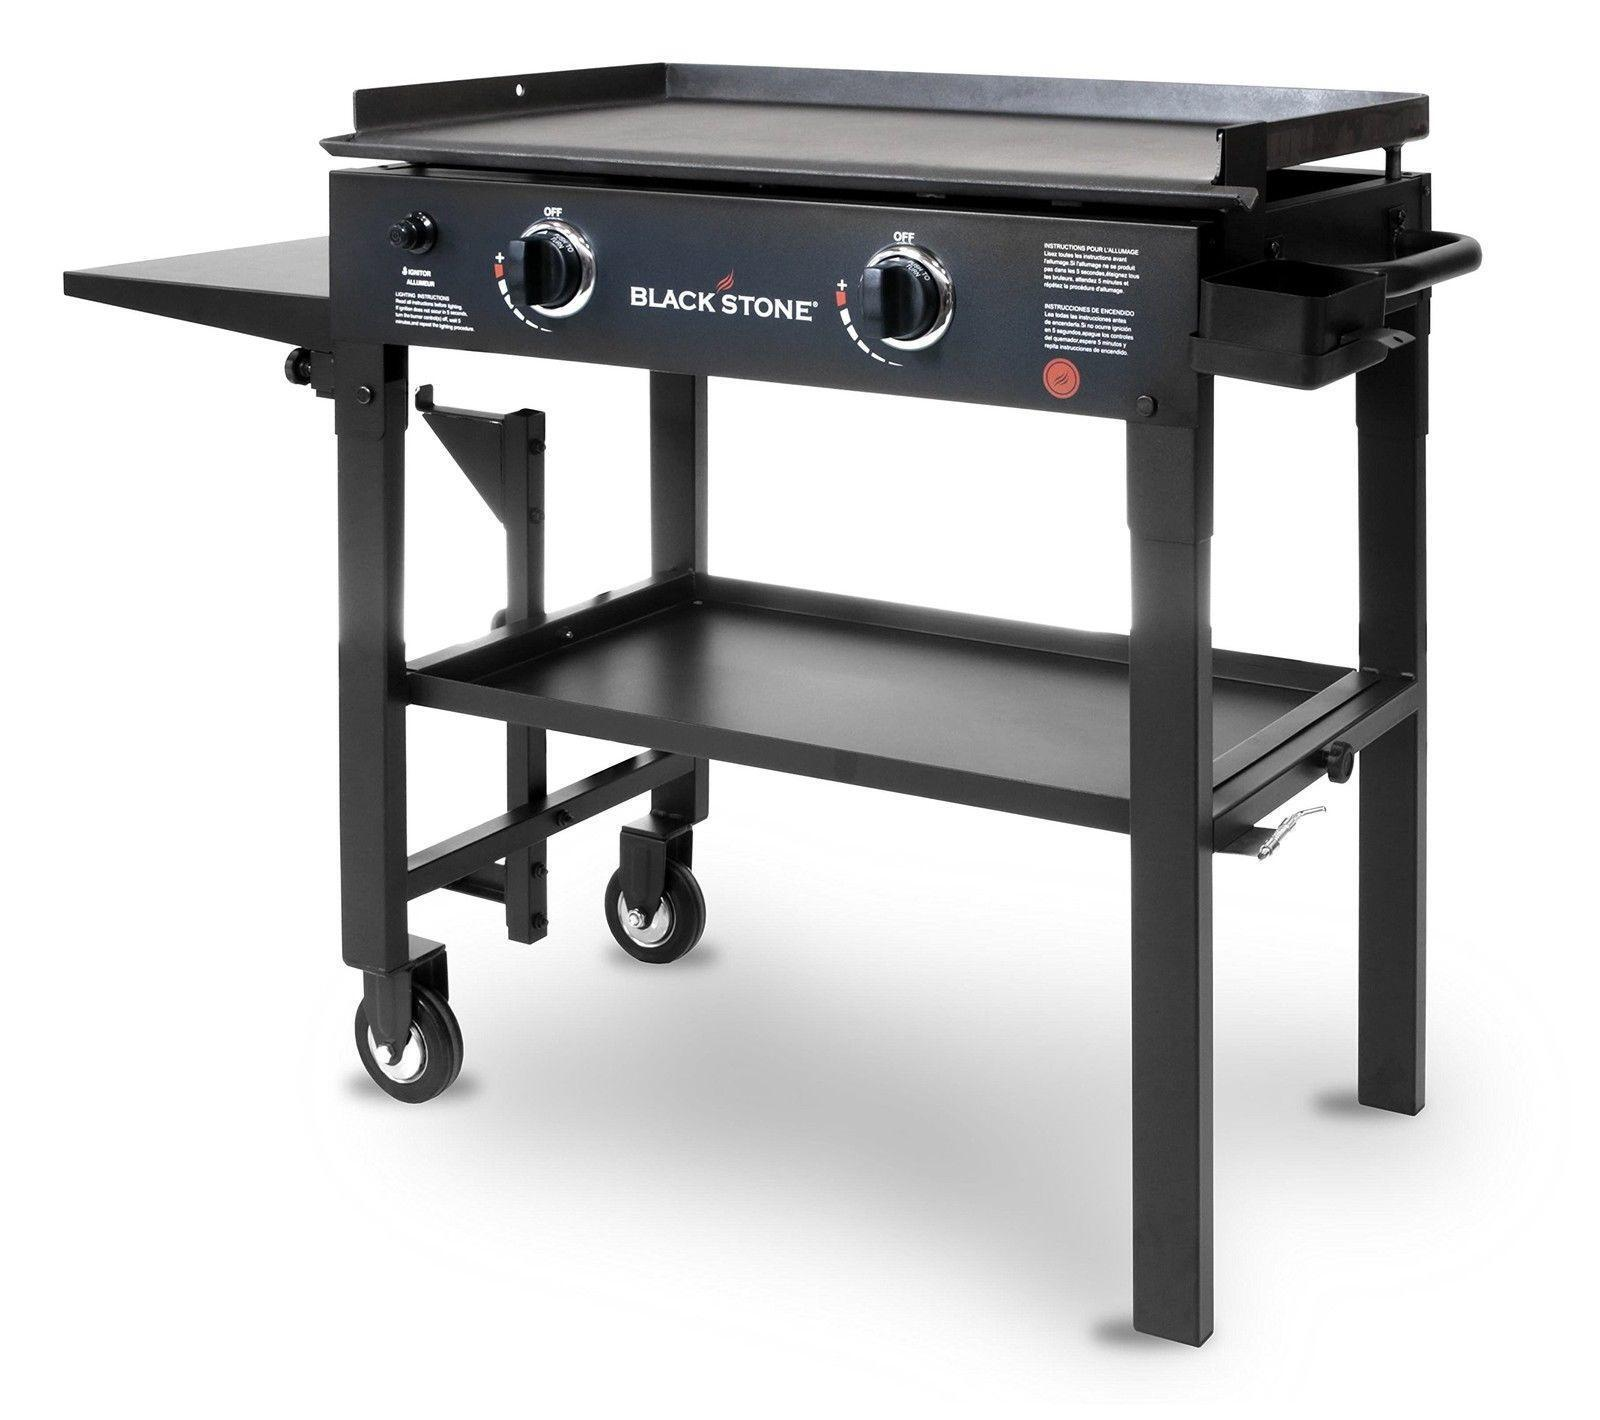 Blackstone 28 Inch Outdoor Cooking Gas Grill Griddle Station | eBay